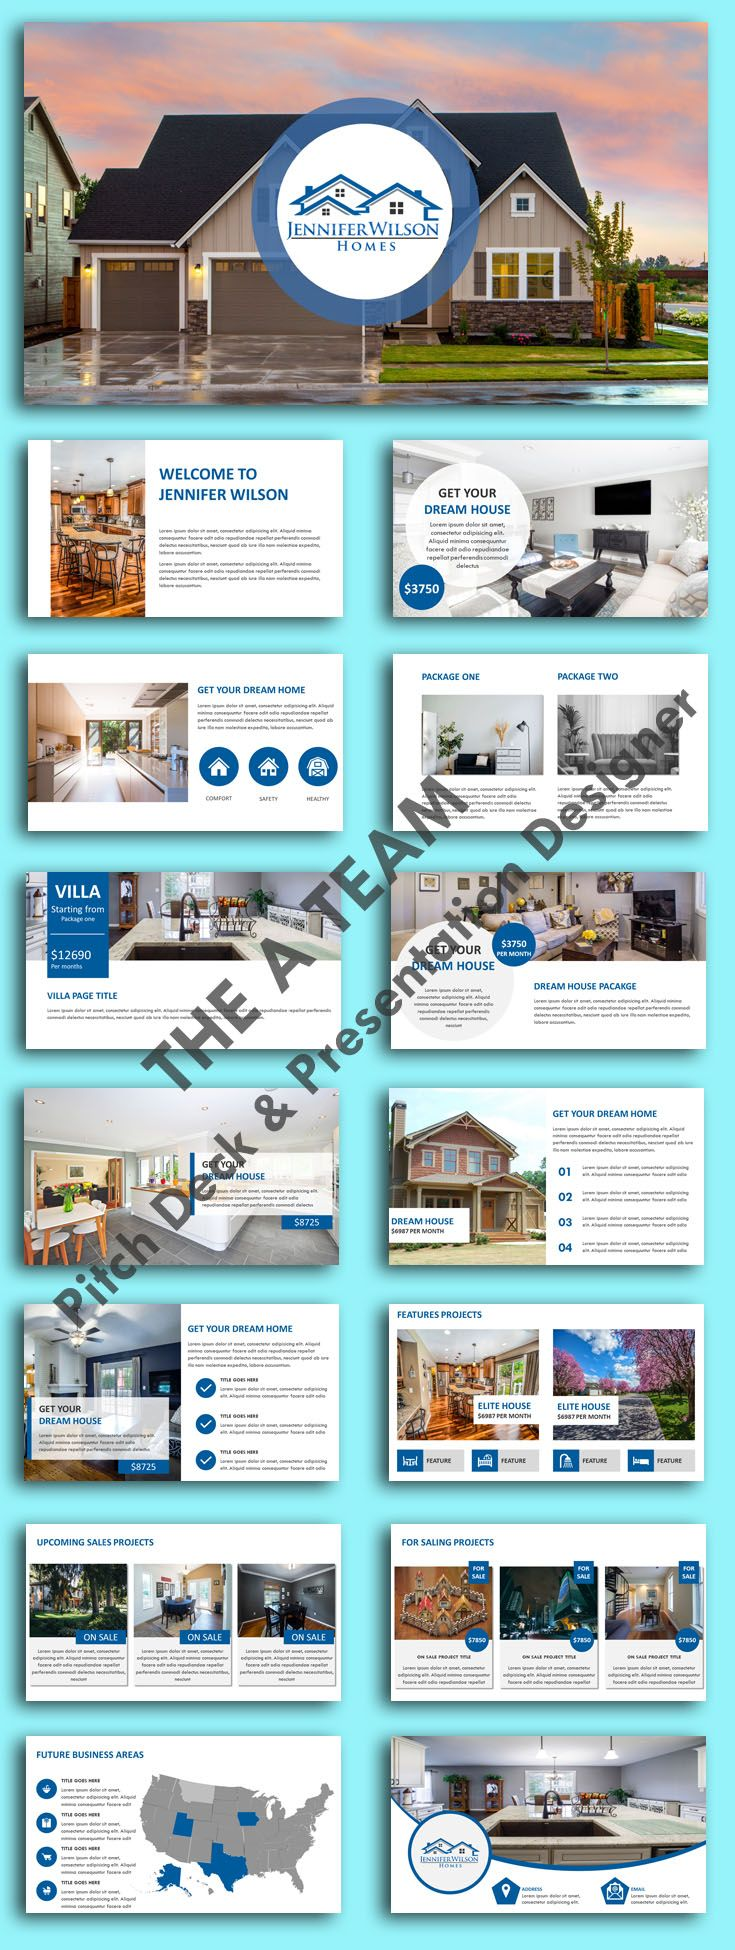 PowerPoint real estate investor pitch deck template design